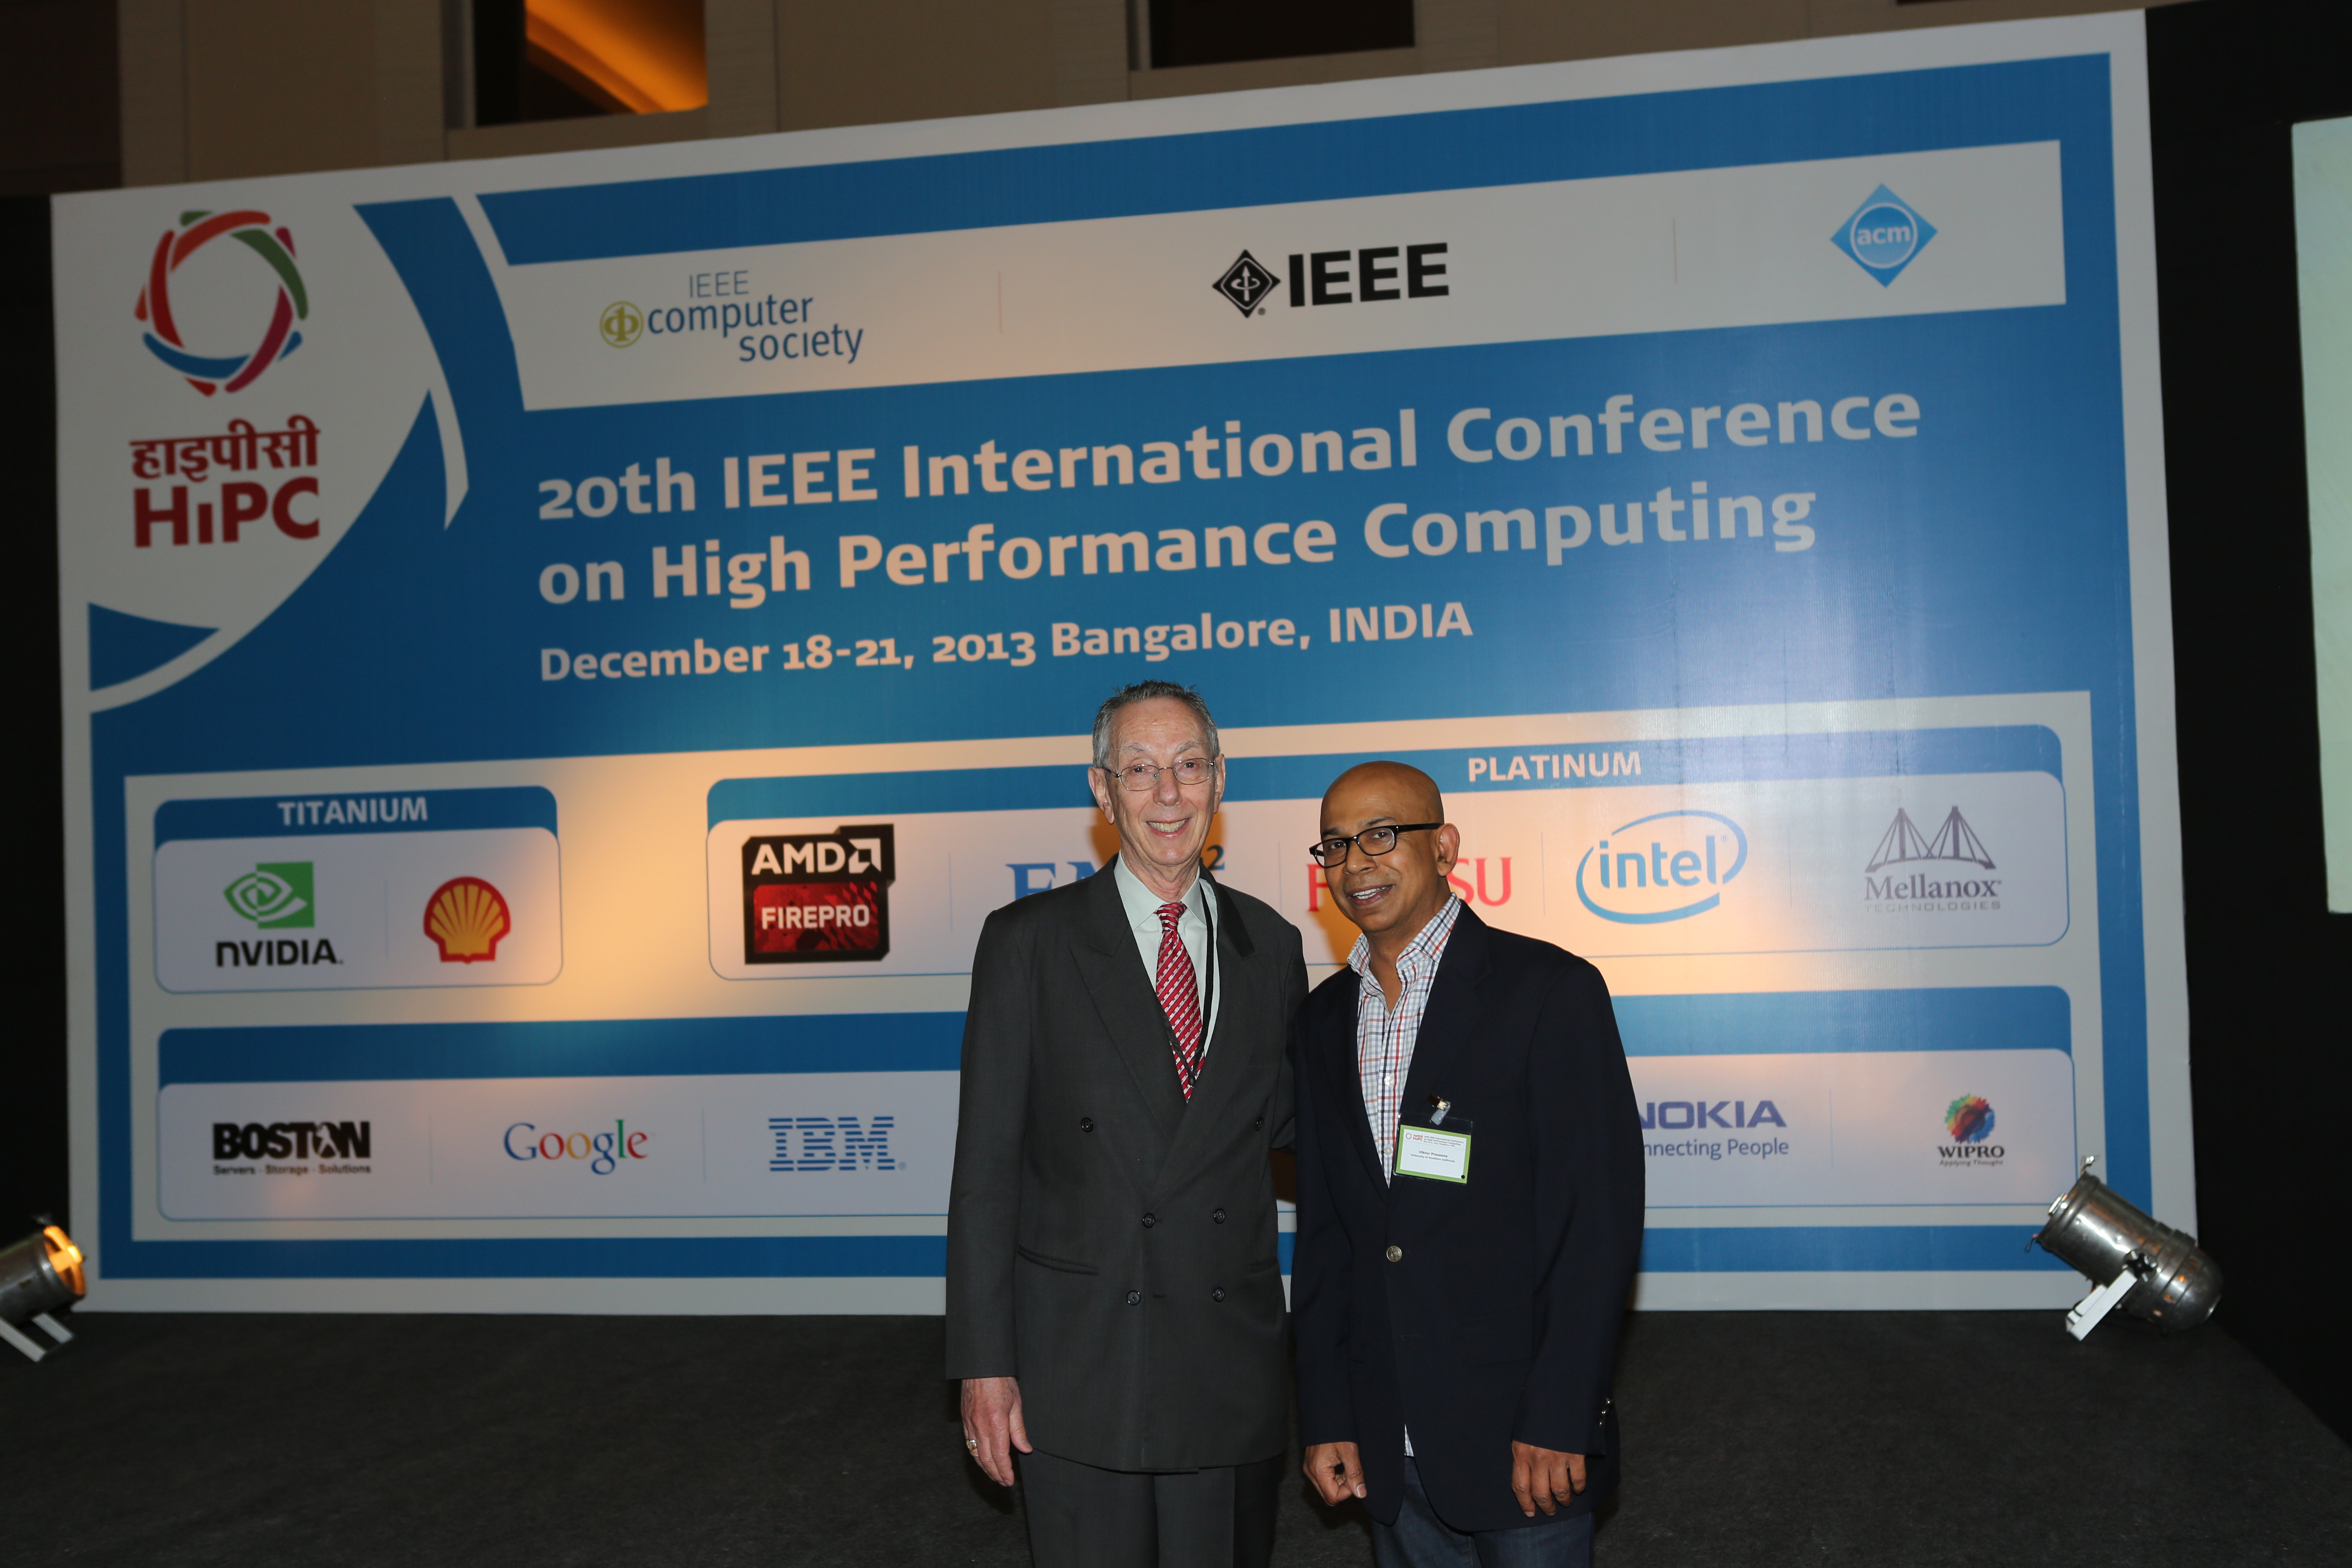 ATIP President Dr. Kahaner with Viktor Prasanna at the IEEE International Conference on High Performance Computing (HiPC 2013) in Bangalore.